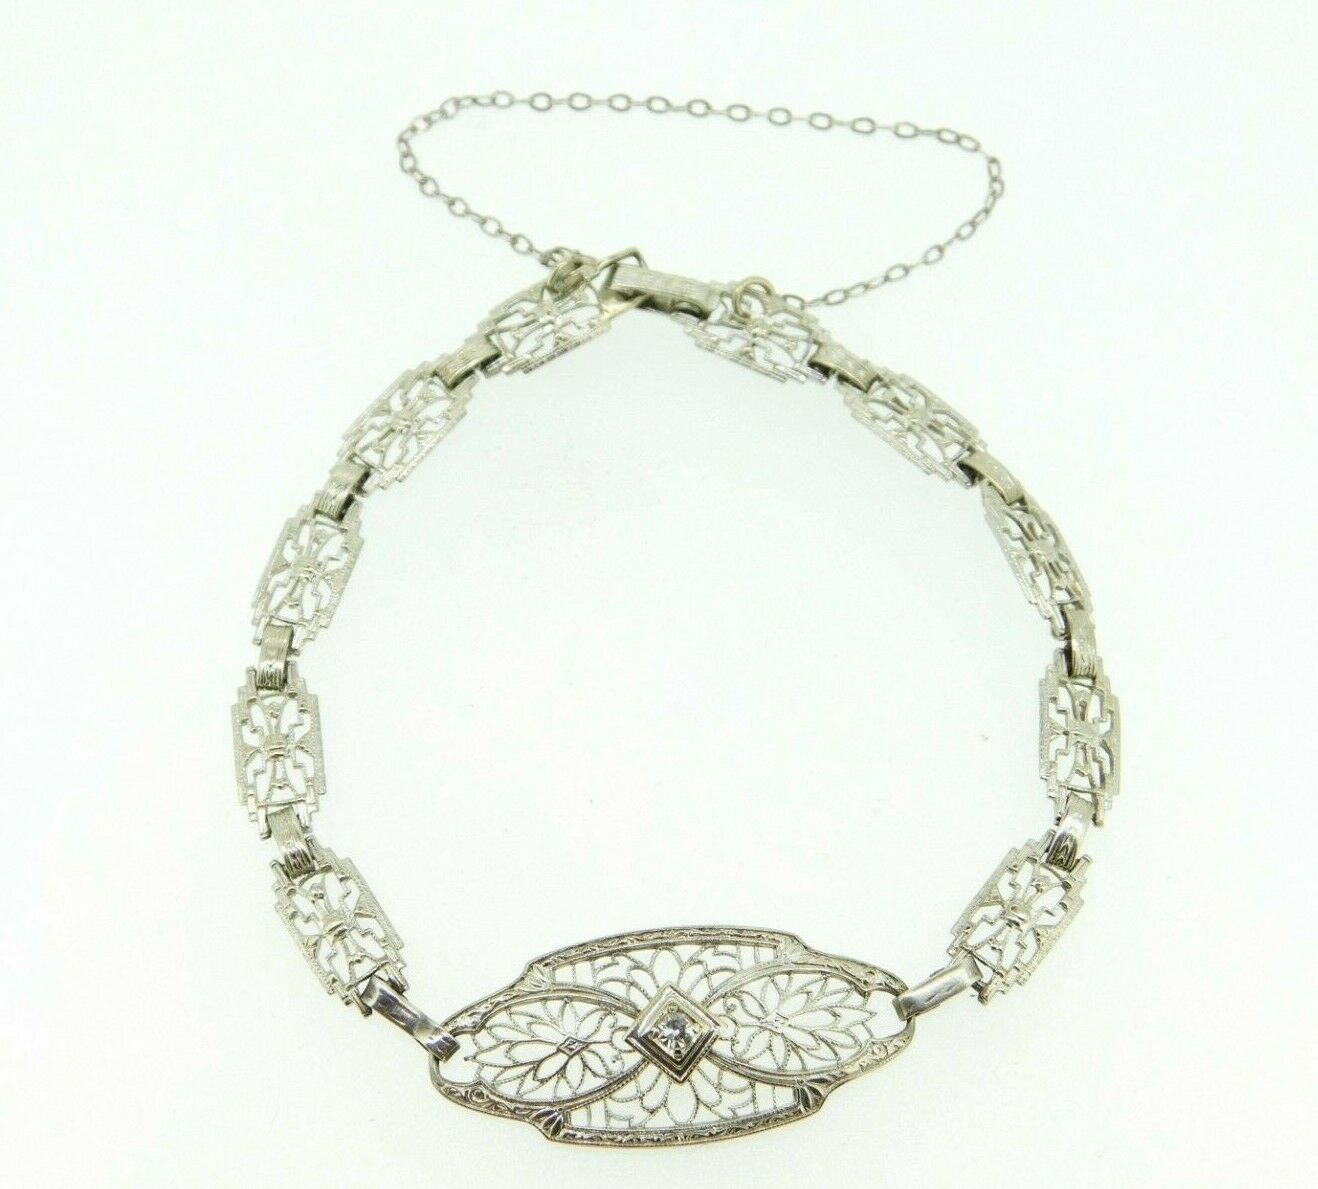 Primary image for 10k White Gold Art Deco Filigree Bracelet with Genuine Natural Diamond (#J663)